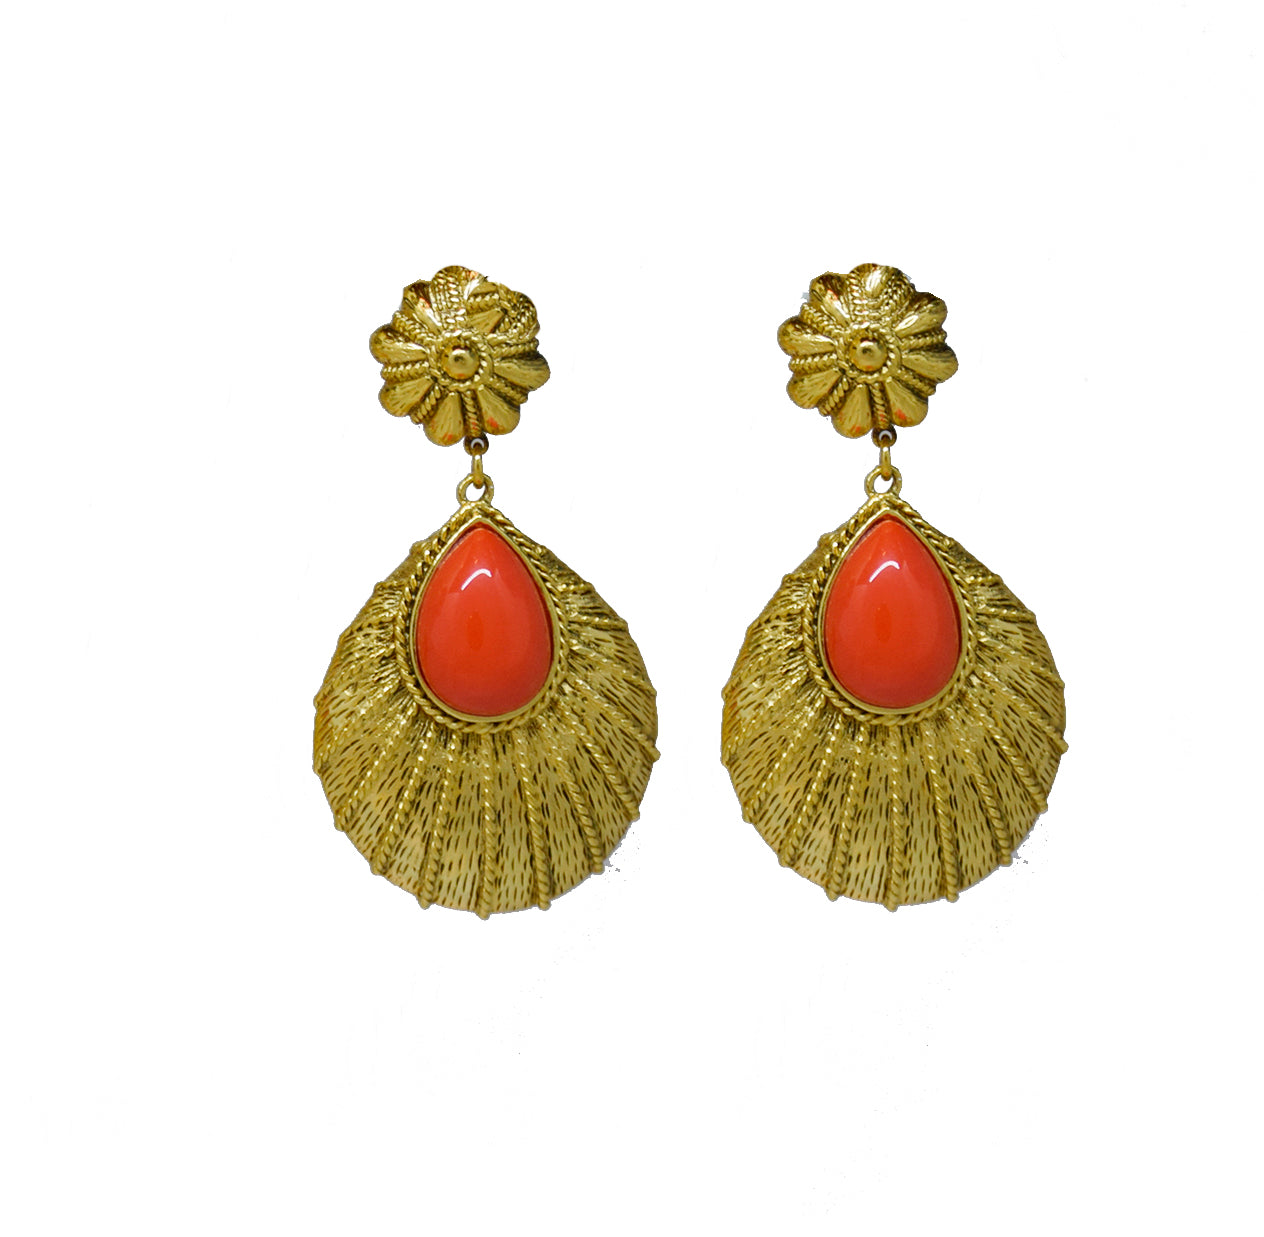 109 Textured 24 kt gold plated tear drop clip earring with coral stone